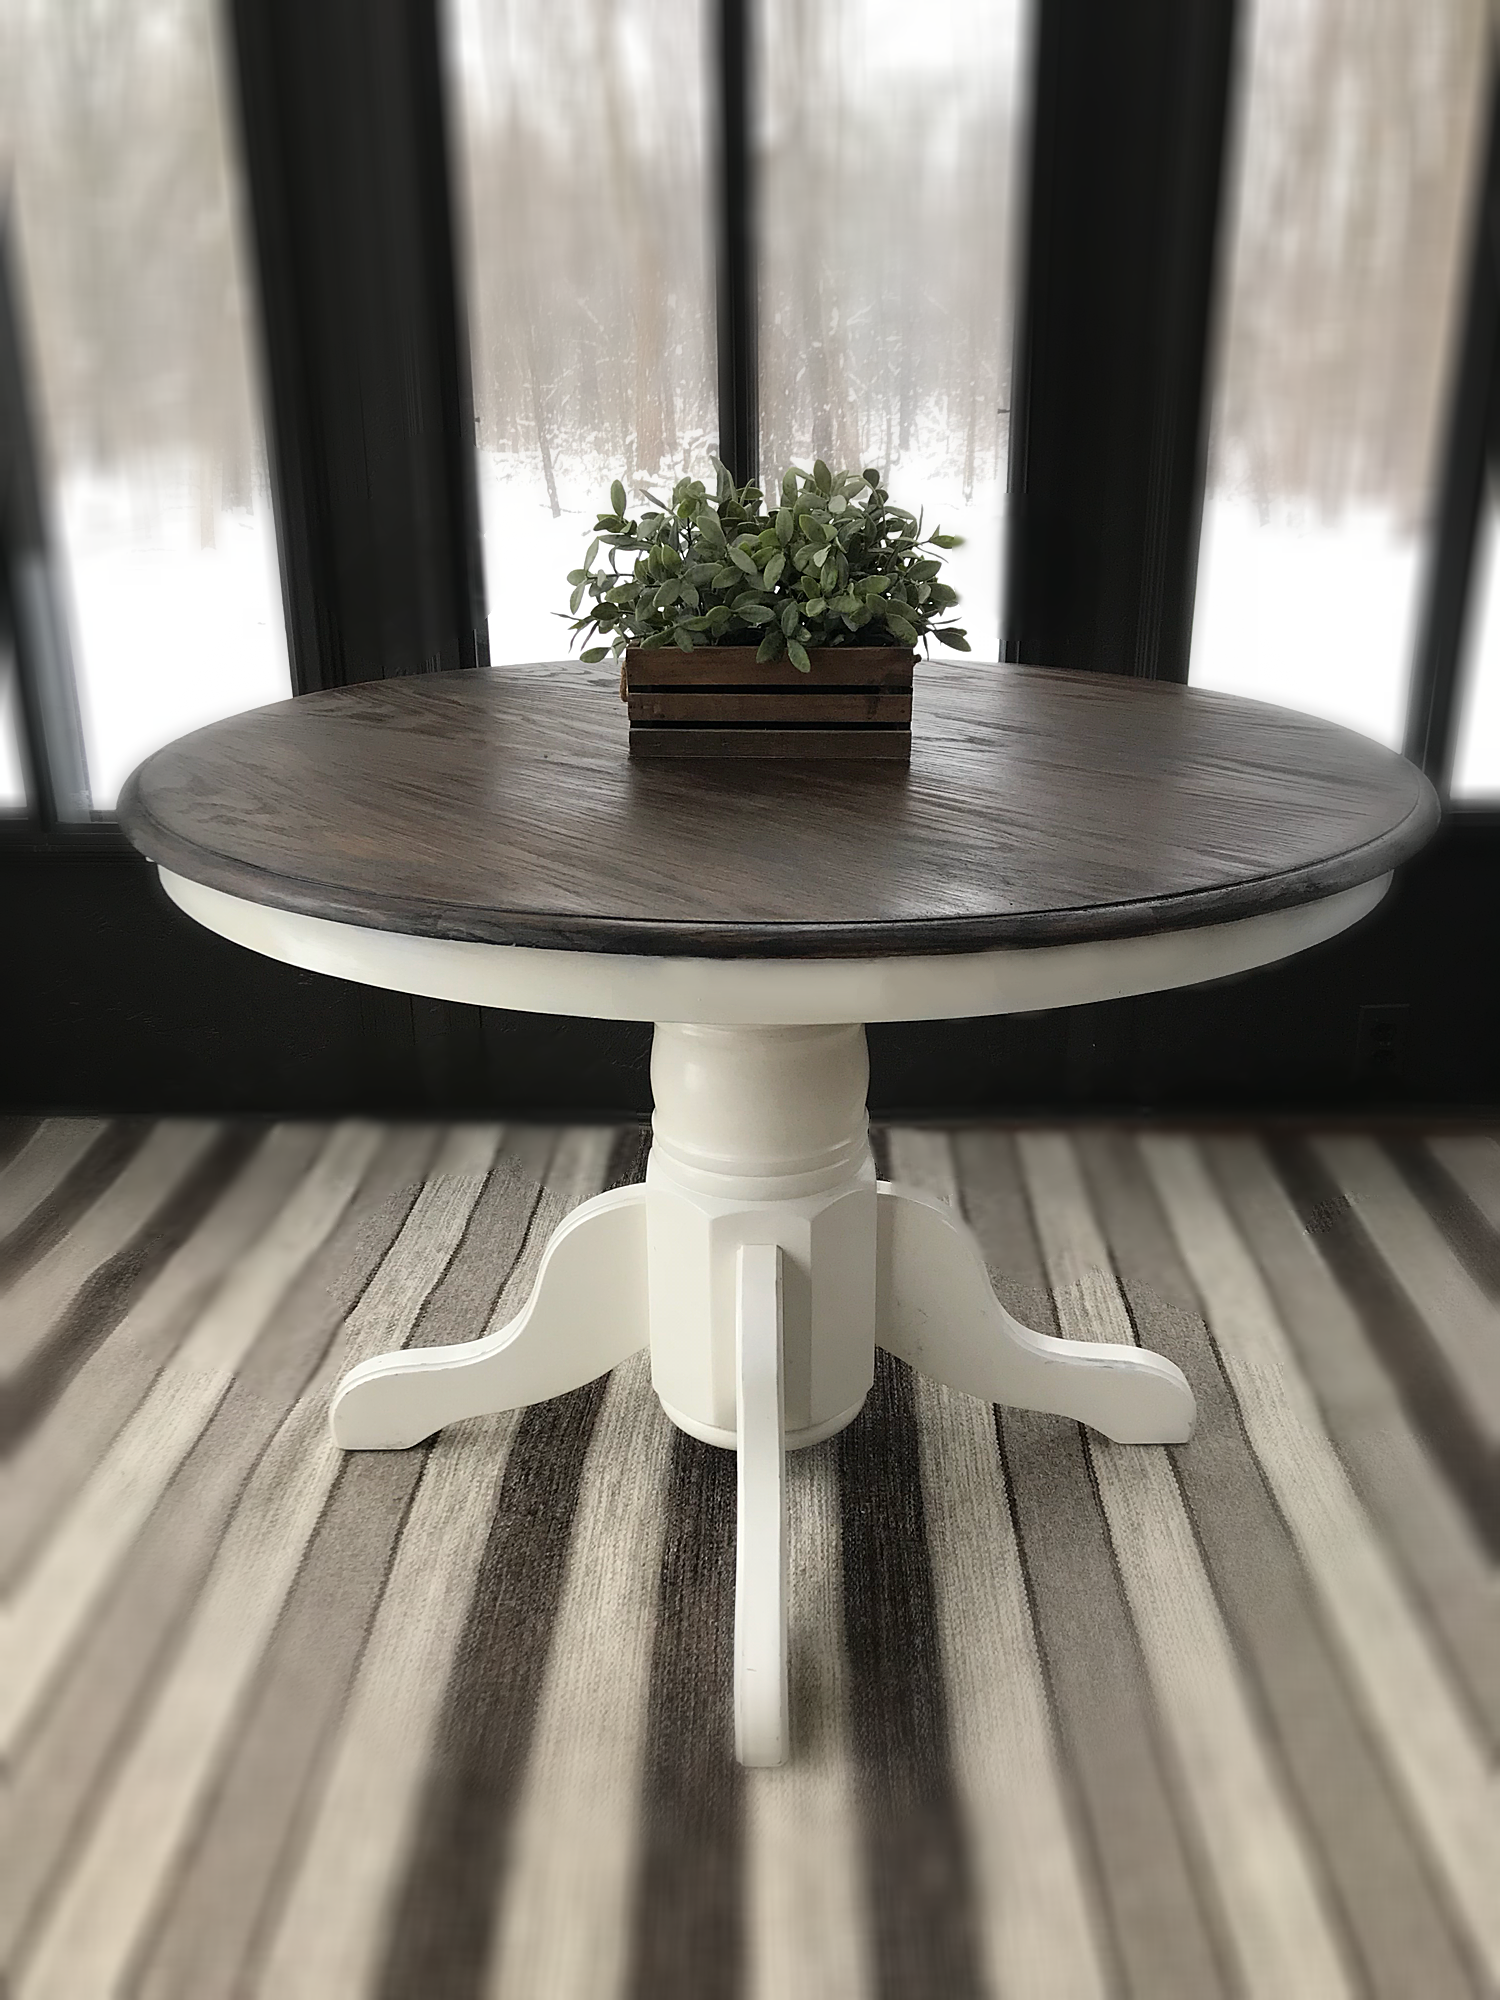 vintage wooden accent table rustic entryway farmhouse wood country furniture console expandable round kitchen steel coffee clermont slate small wheels distressed white brown